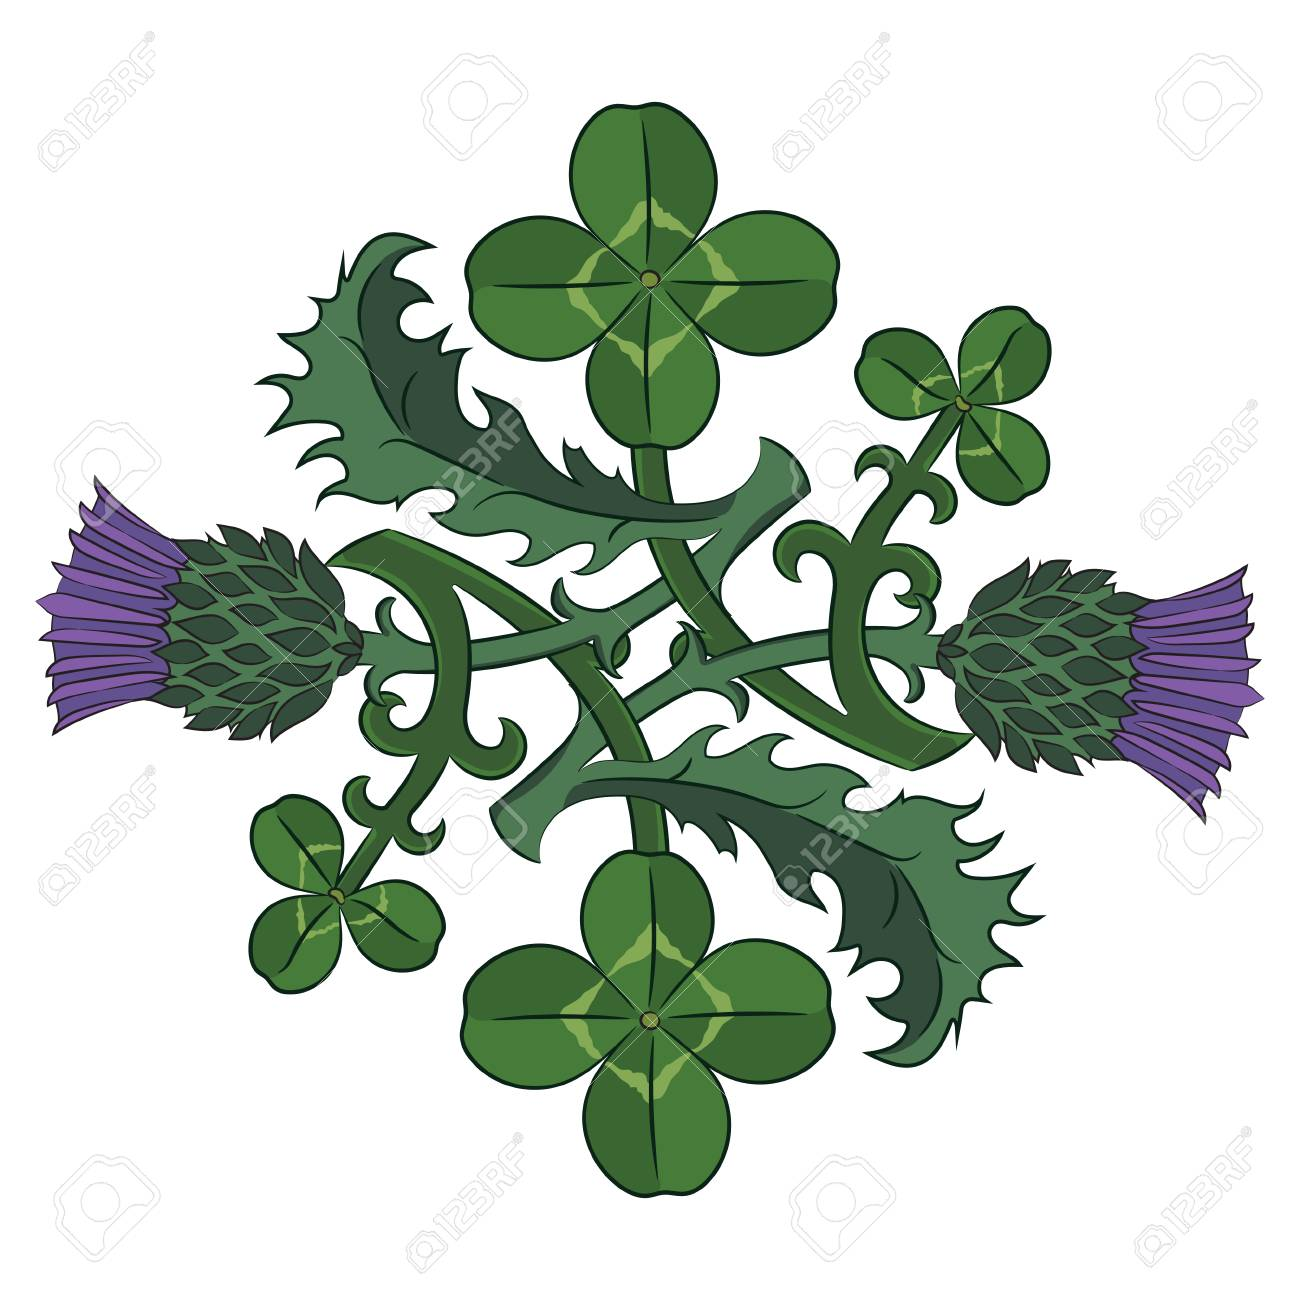 Thistle and clover the symbols of ireland and scotland vector thistle and clover the symbols of ireland and scotland vector illustration stock vector 86100899 buycottarizona Image collections